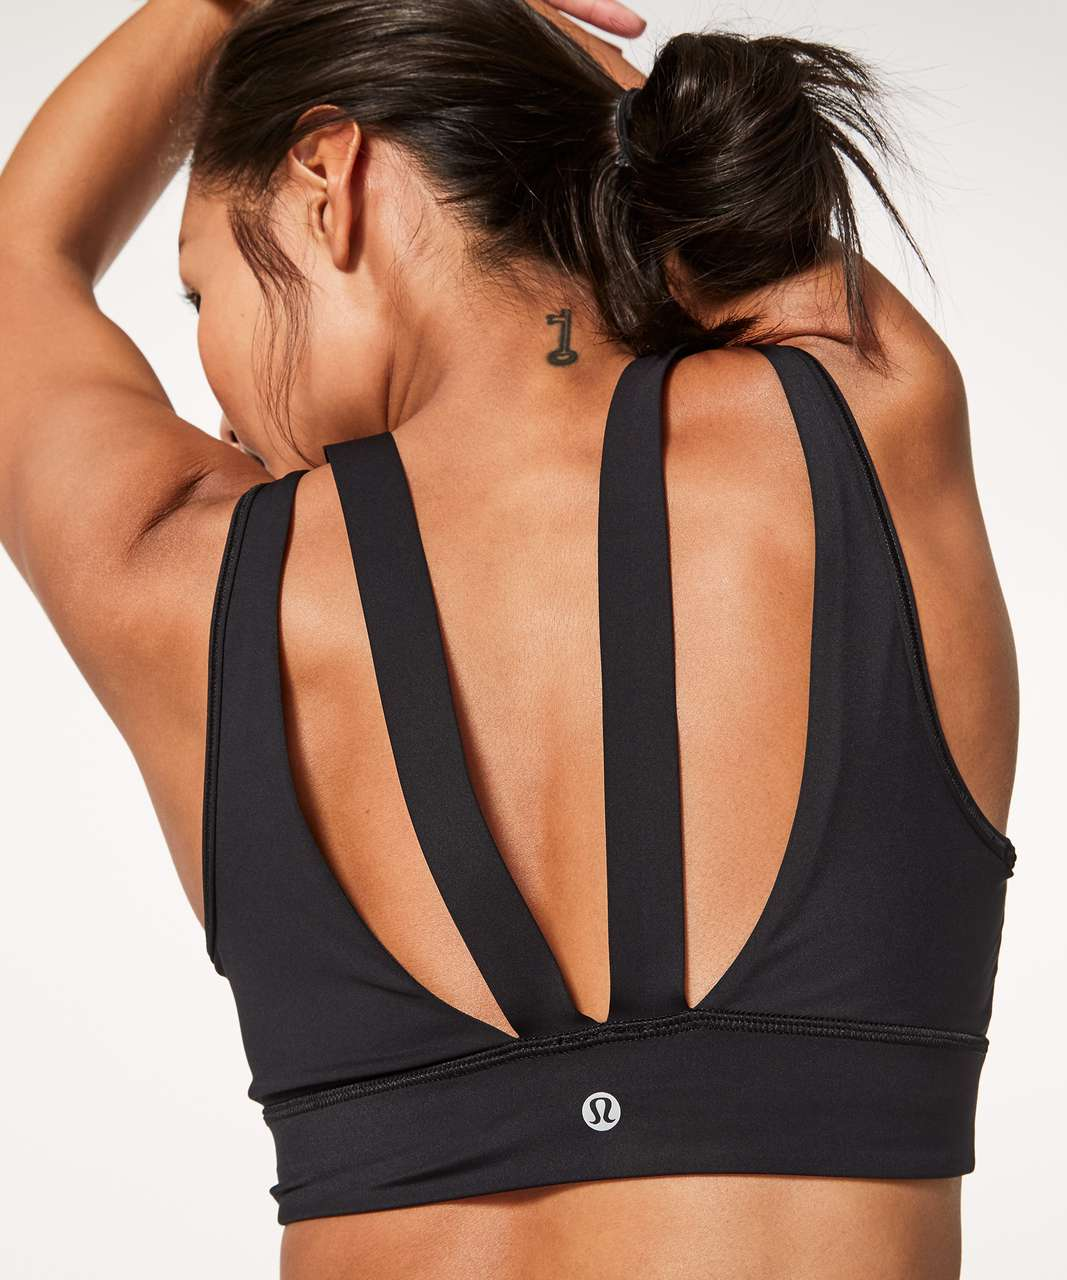 Lululemon Run The Day Bra - Black